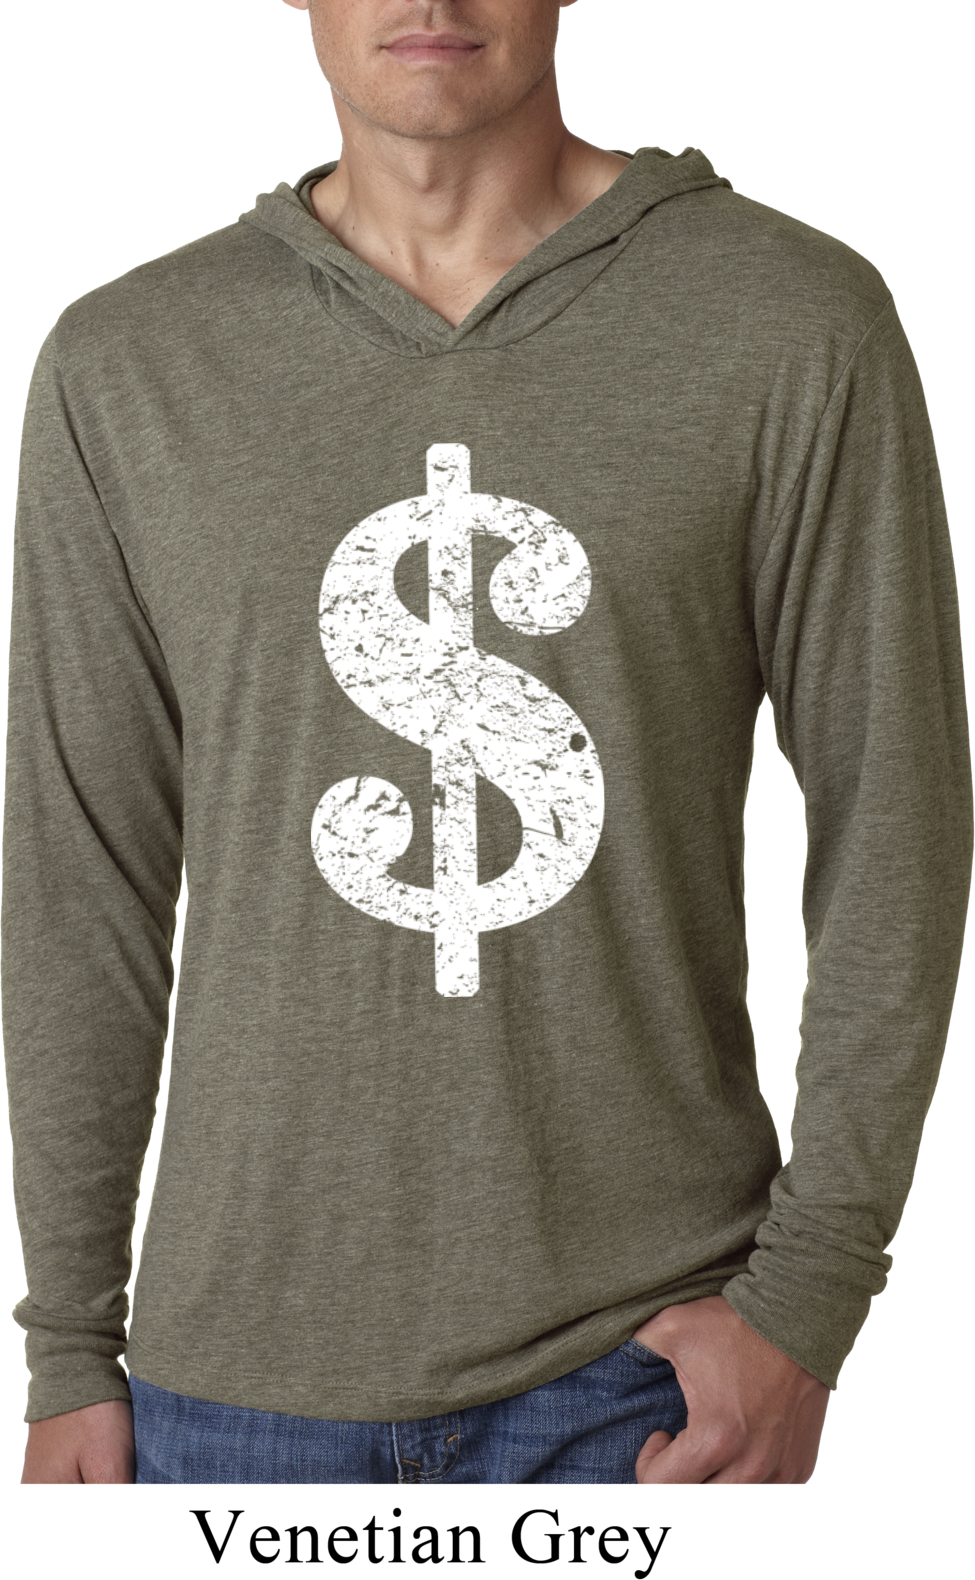 Make a bold statement with our 12 Dollar T-Shirts, or choose from our wide variety of expressive graphic tees for any season, interest or occasion.